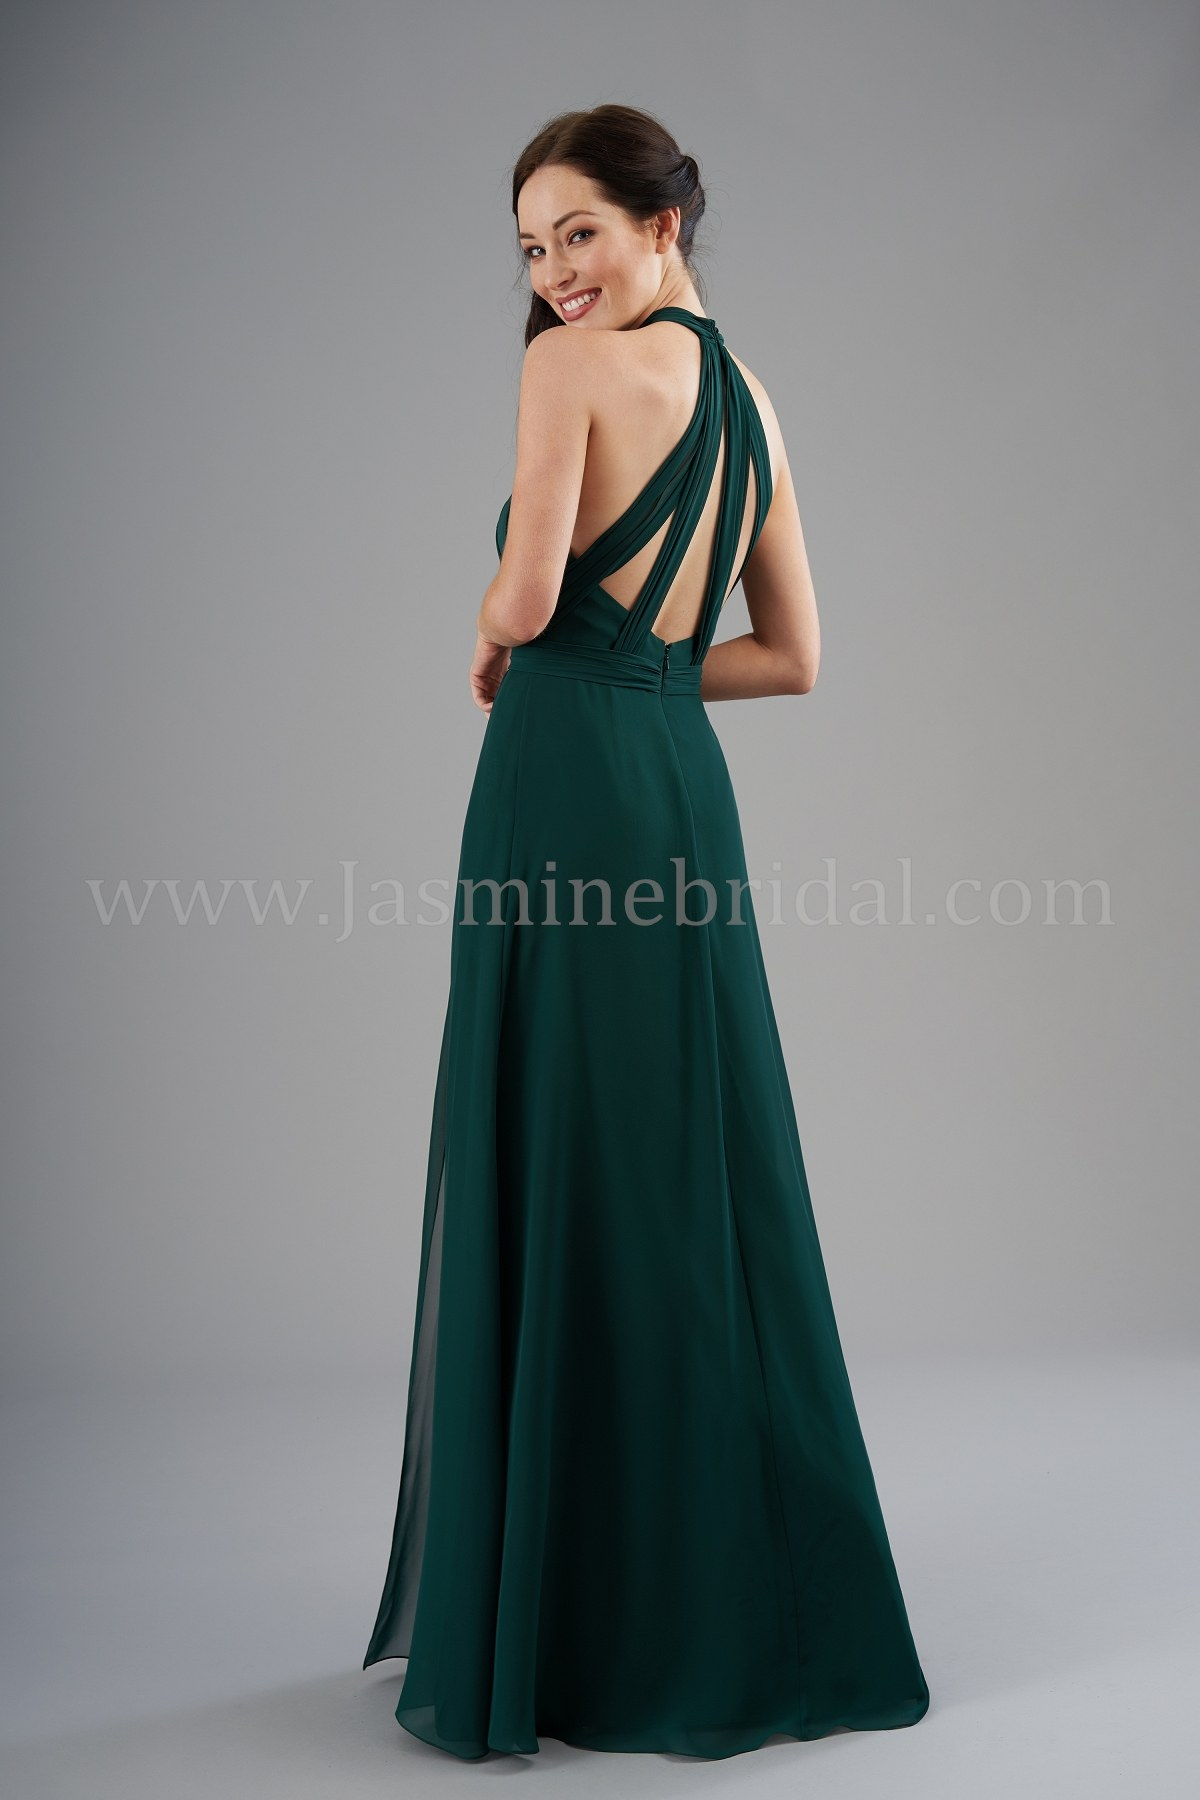 bridesmaid-dresses-B203051-B